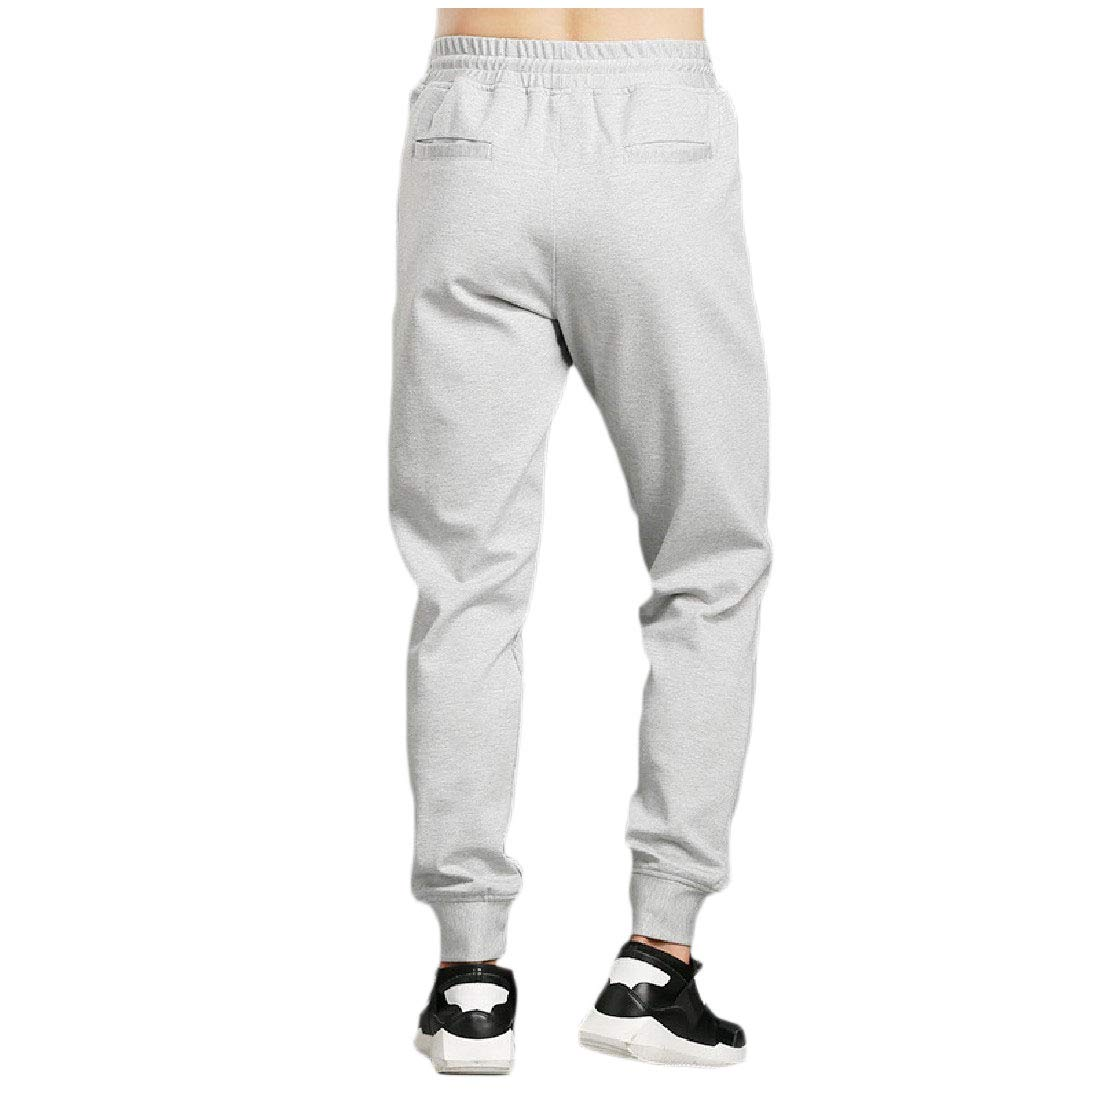 YUNY Mens Causal Solid Fitted Fall Winter Trendy Sports Jogger Trousers Grey XS